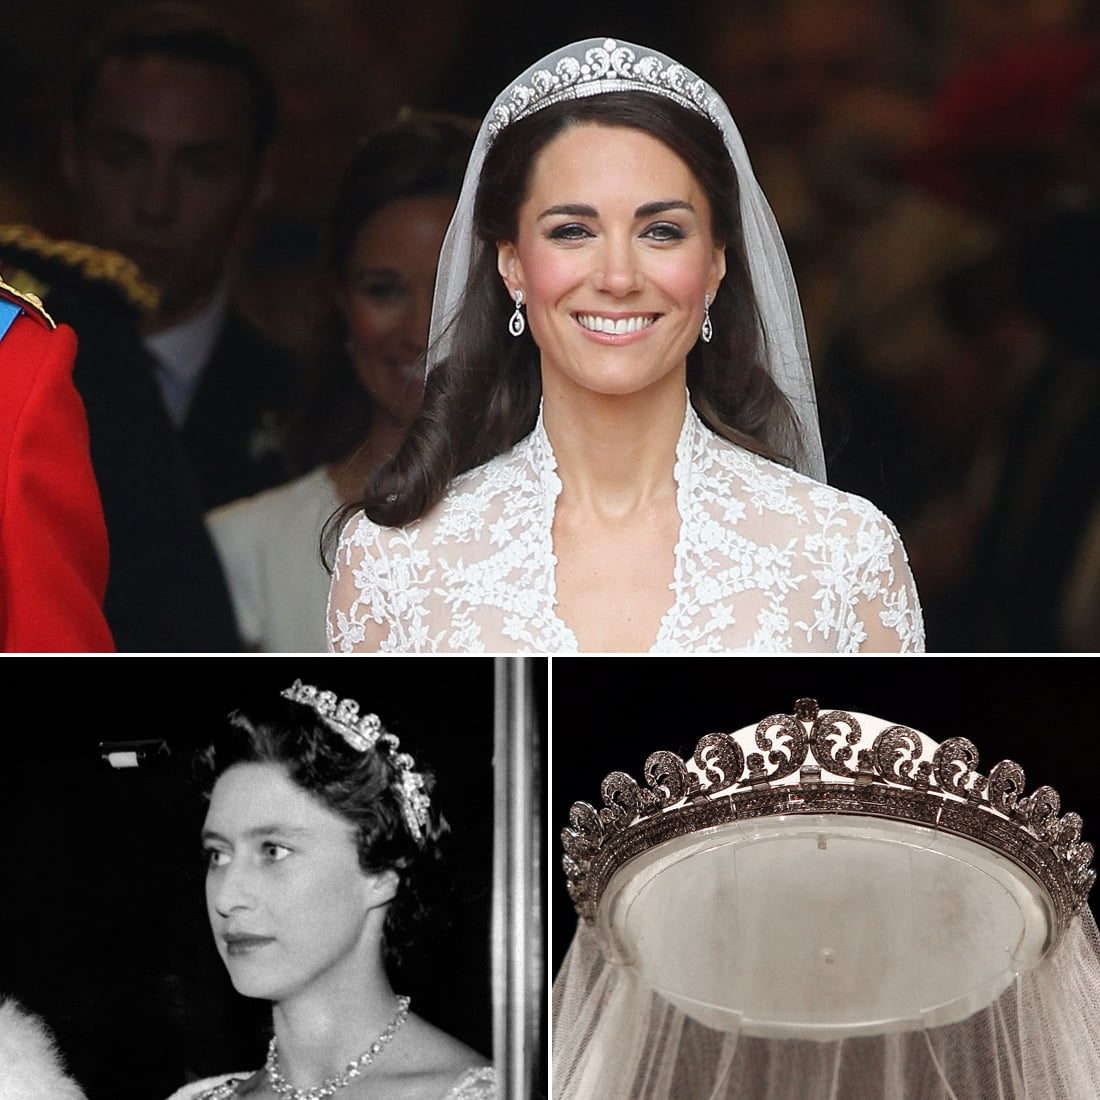 The Halo Tiara | The Real History Behind Kate Middleton's ...